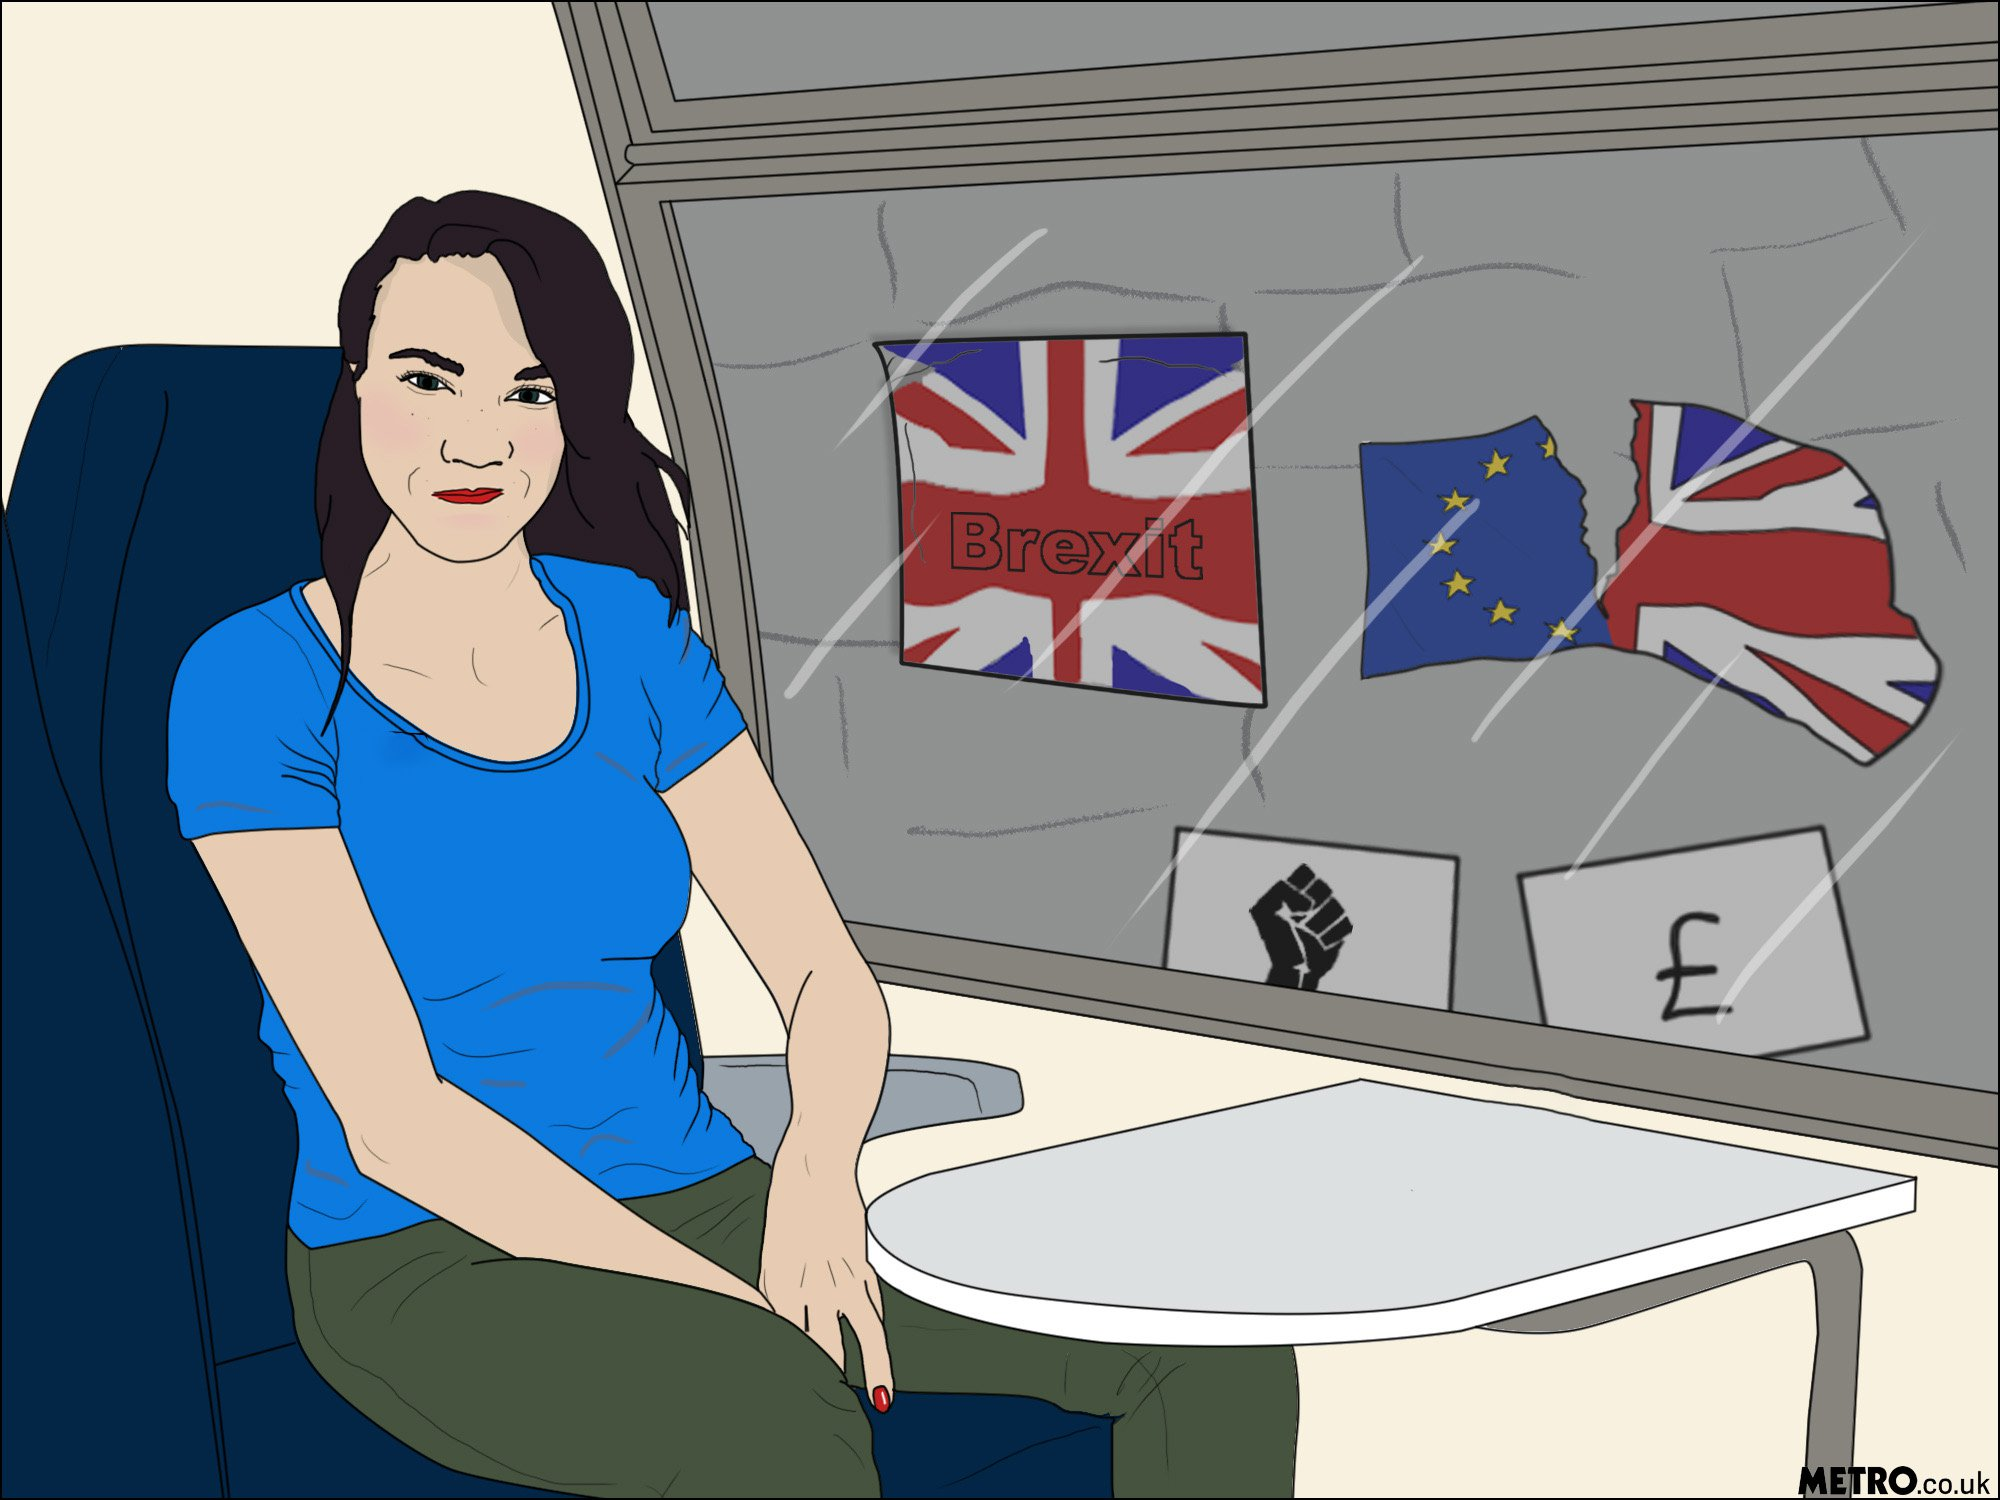 It's the day we were meant to leave the EU and I no longer feel safe